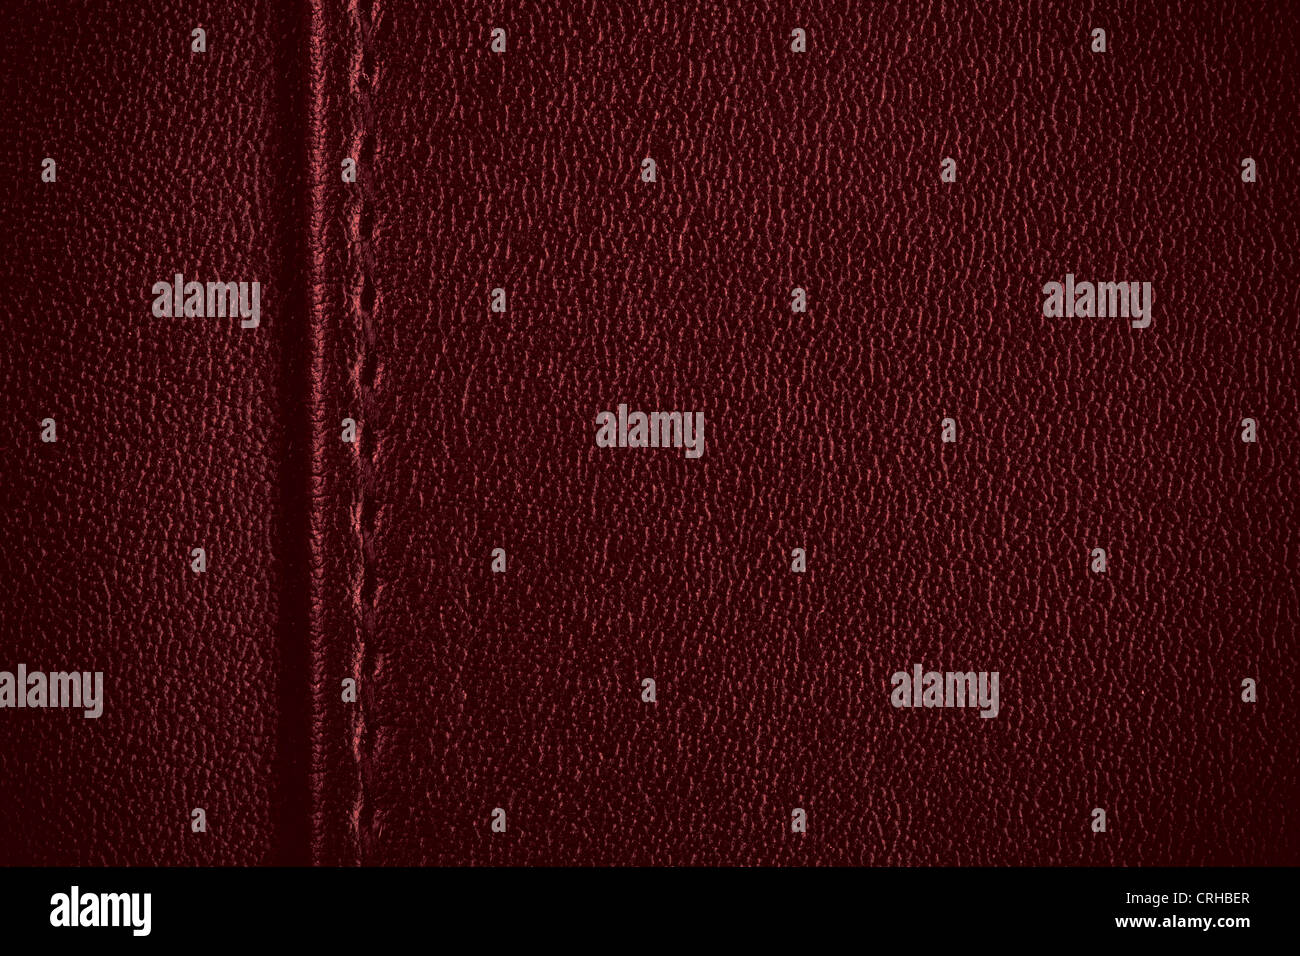 red leather texture, seam between margin and background - Stock Image